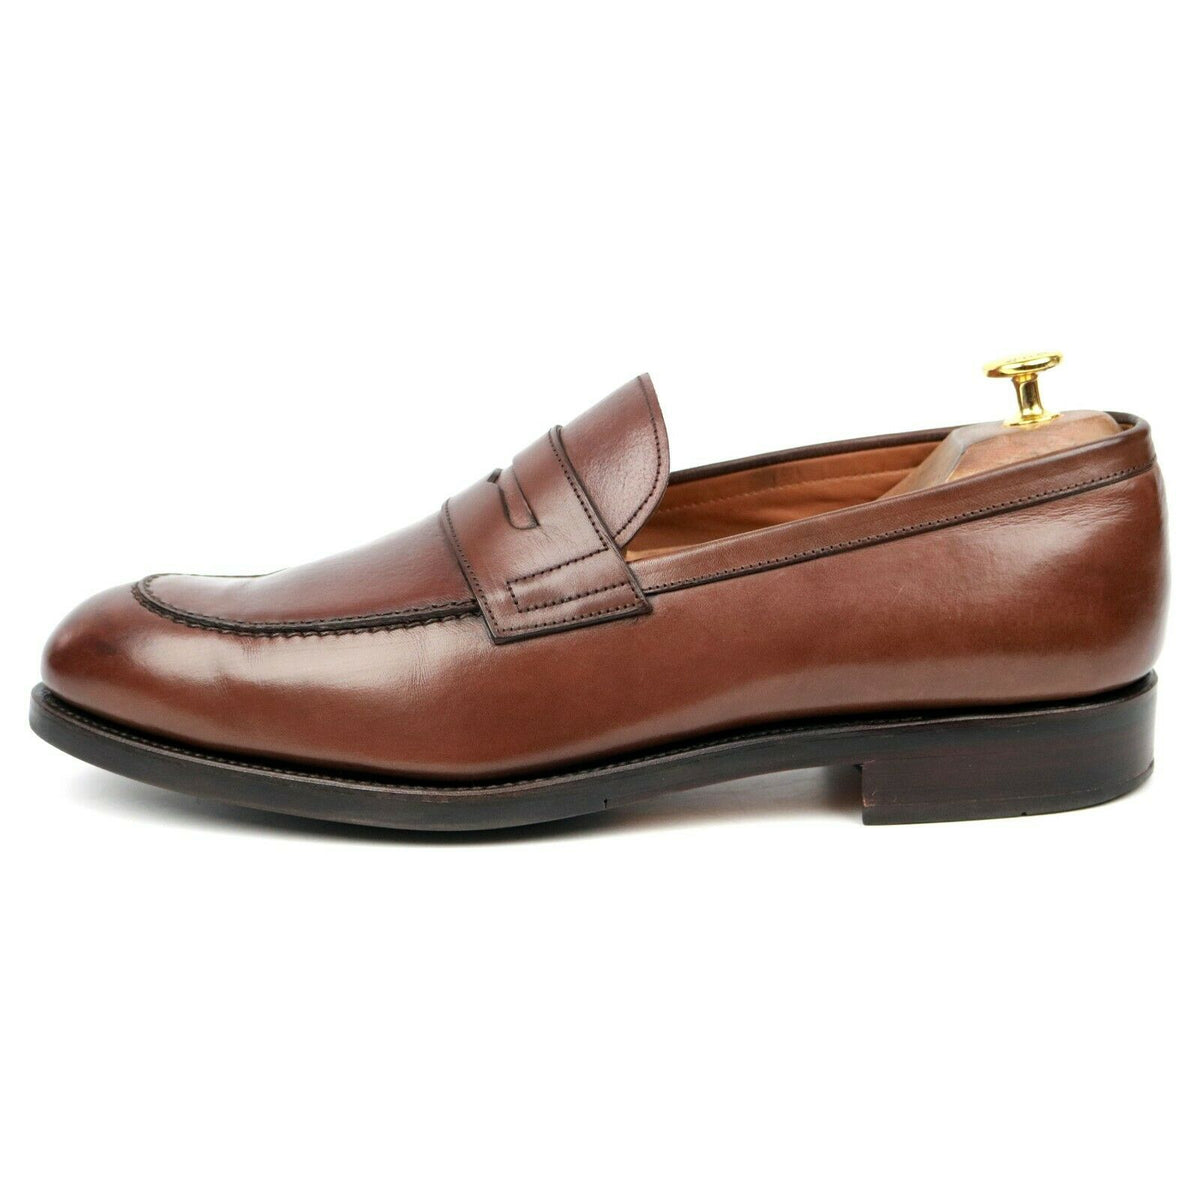 Carmina X Hackett 'Robert' Brown Leather Loafers UK 11 E